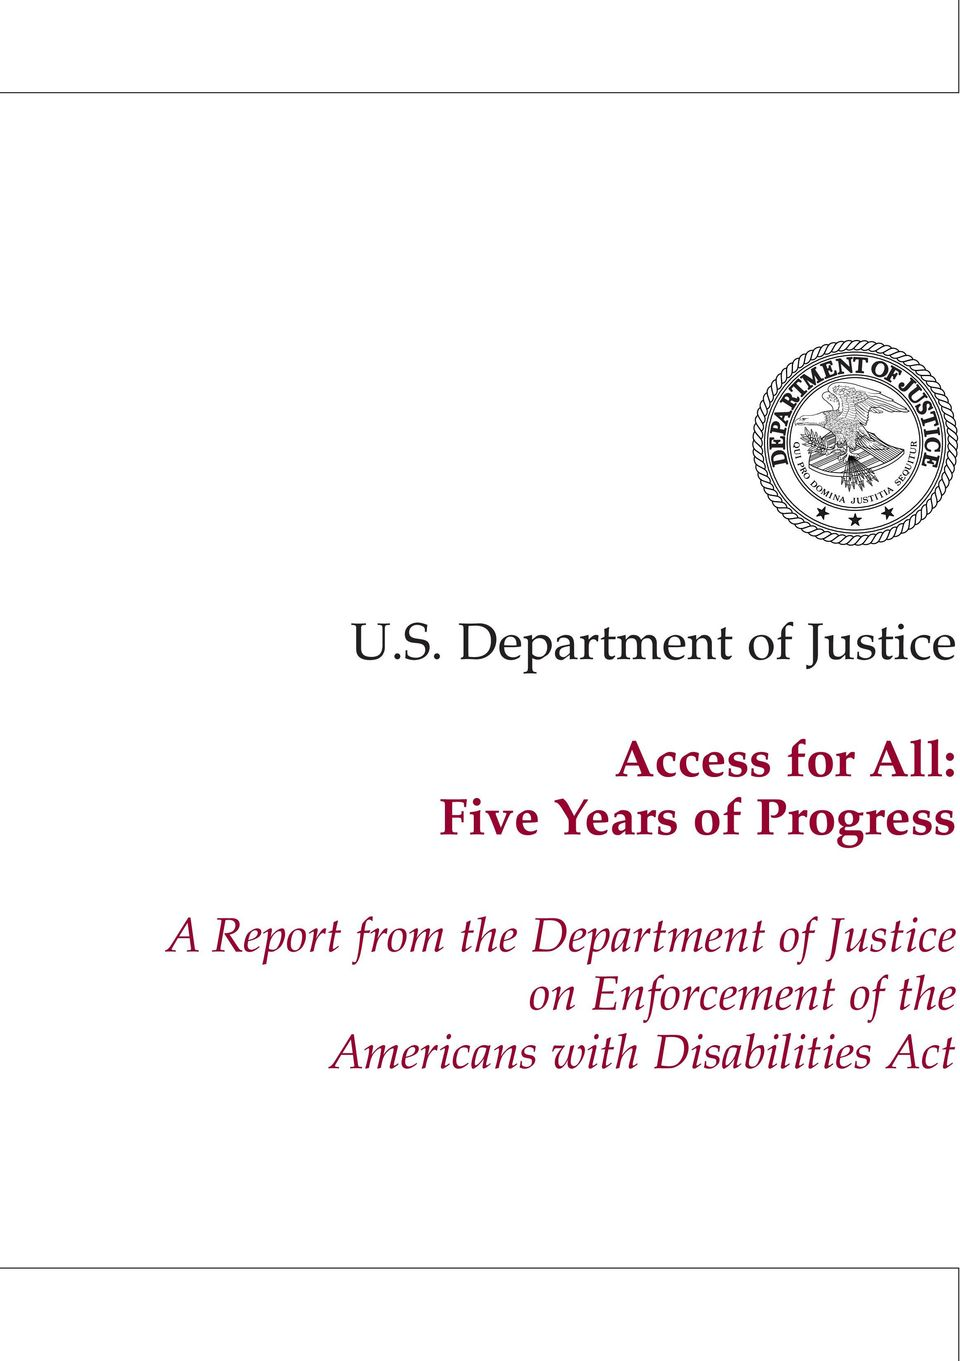 from the Department of Justice on